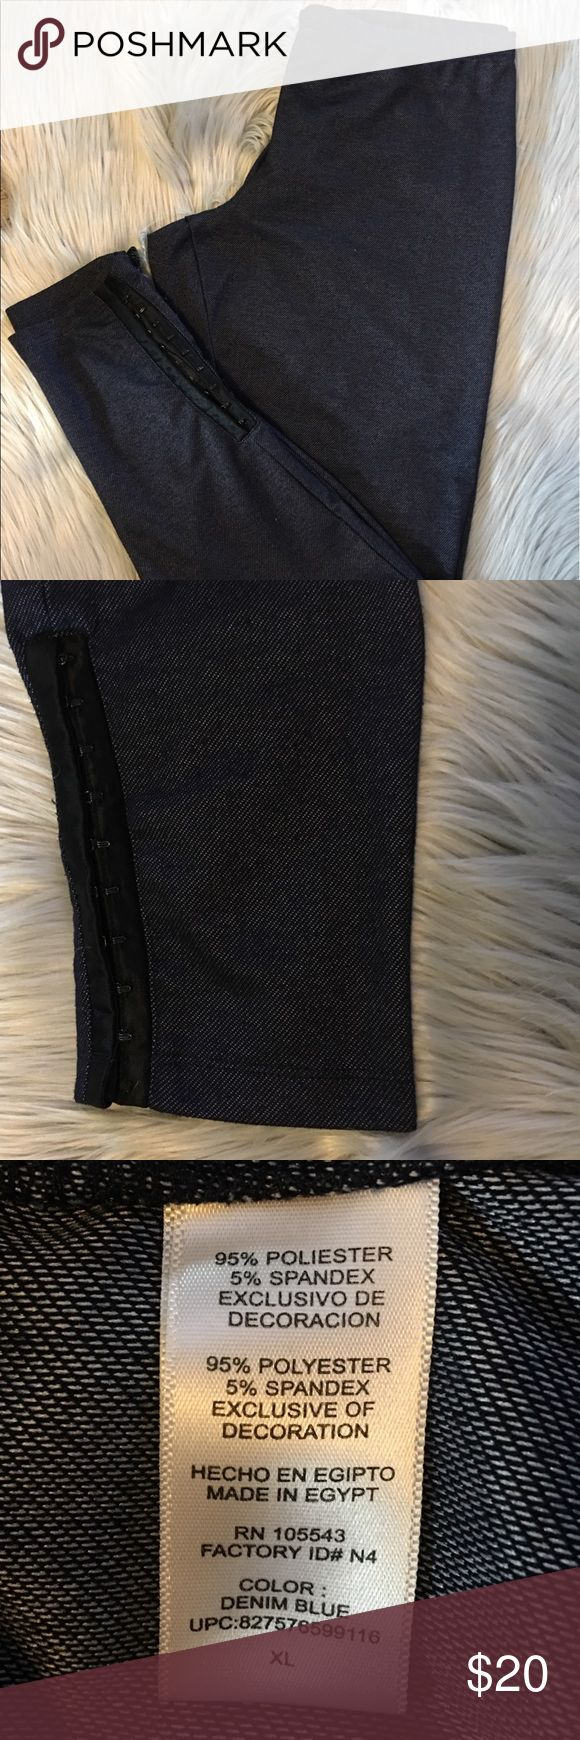 Daisy Fuentes sweats with a cute bottom-XL. Denim Daisy Fuentes sweats with a cute bottom-XL. Denim Blue in color. Cute design on the bottom. 95% polyester, 5% spandex. Daisy Fuentes Pants Track Pants & Joggers